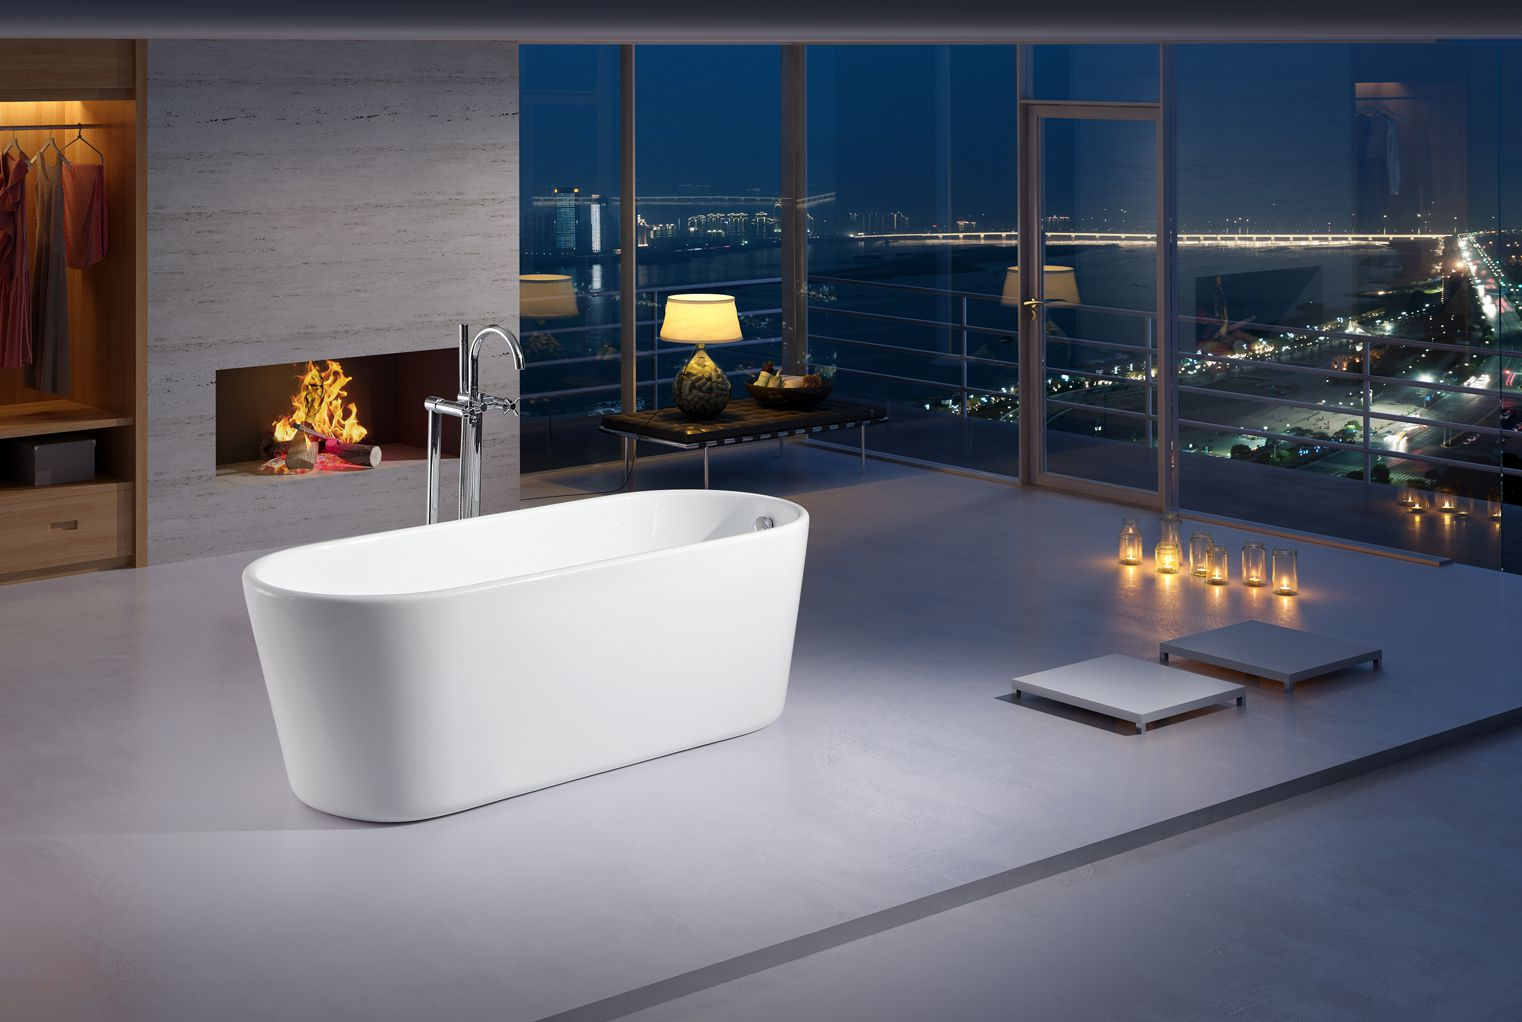 Modern Freestanding Soaking Tubs - home decor - Decordova.us